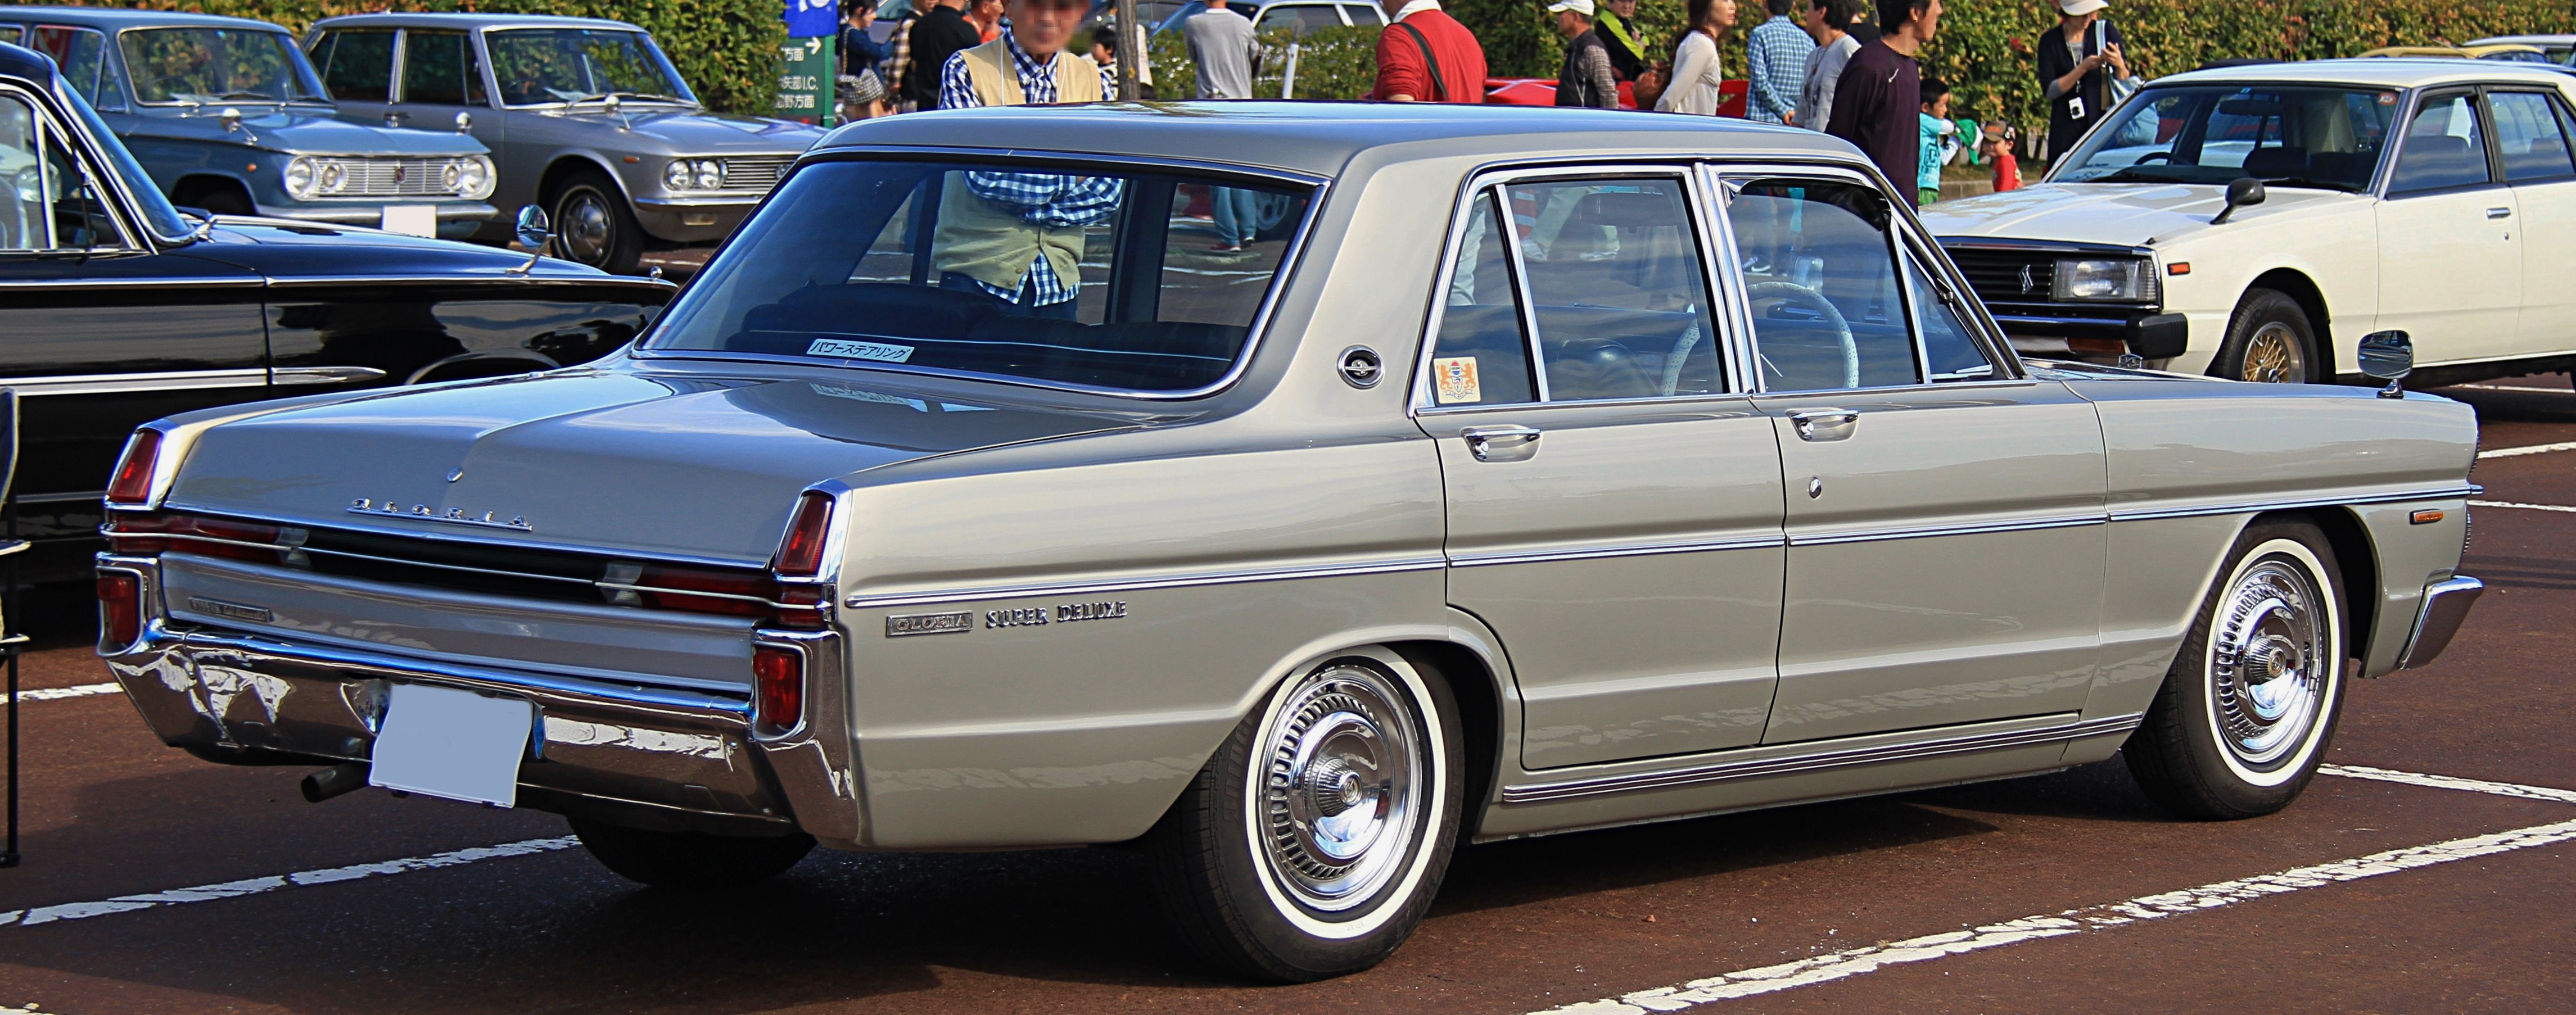 Where Is Nissan Made >> File:1970 Nissan Gloria Super Deluxe Royal Edition rear.jpg - Wikimedia Commons